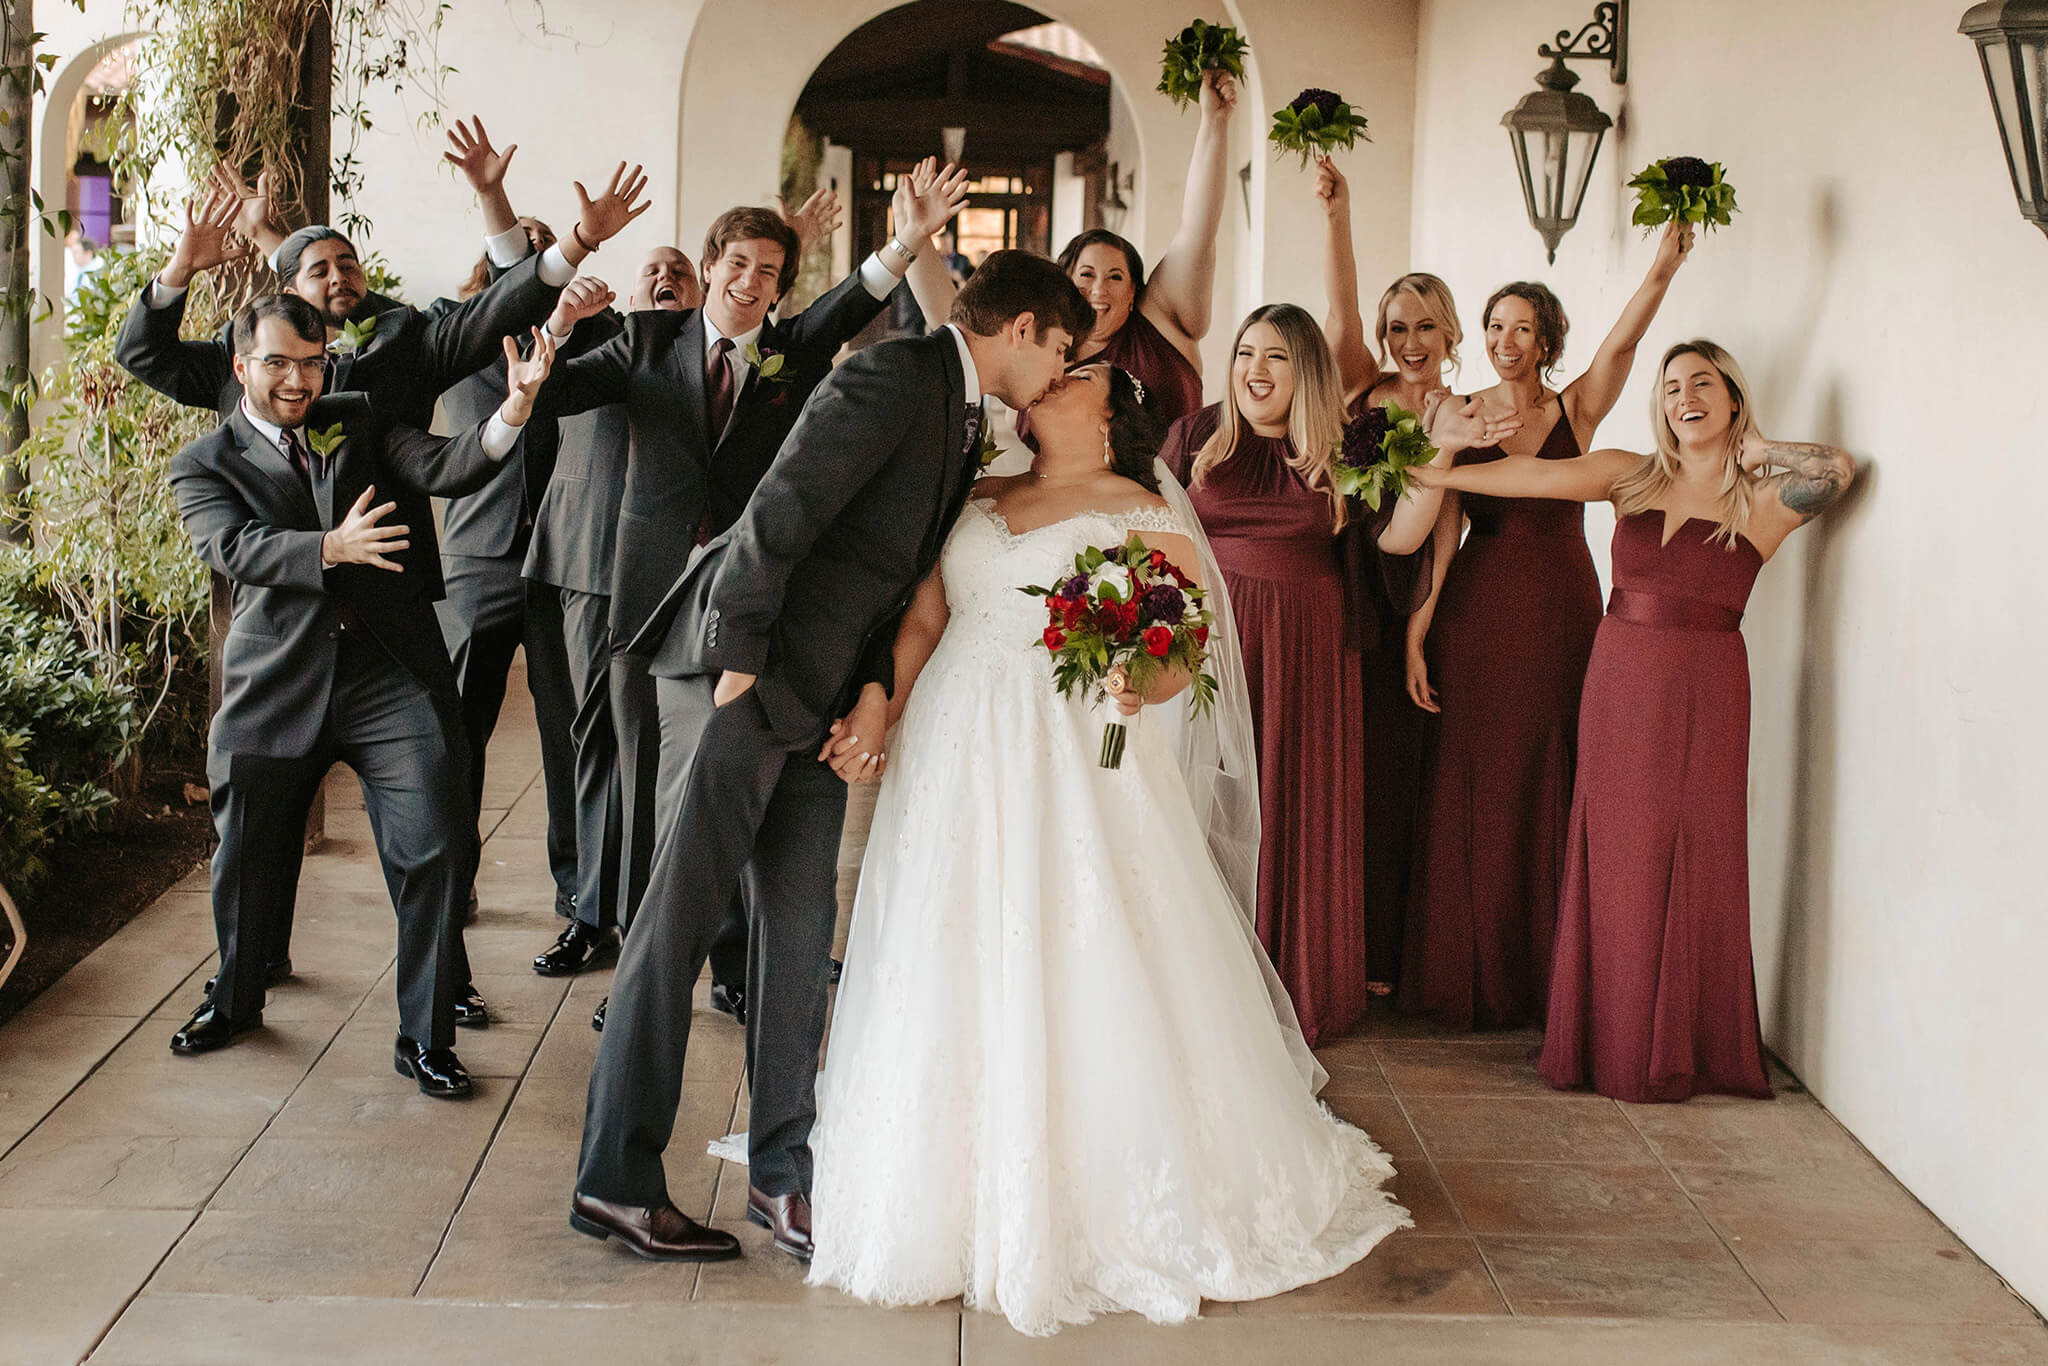 A wedding day must-have? Your tried-and-true crew.